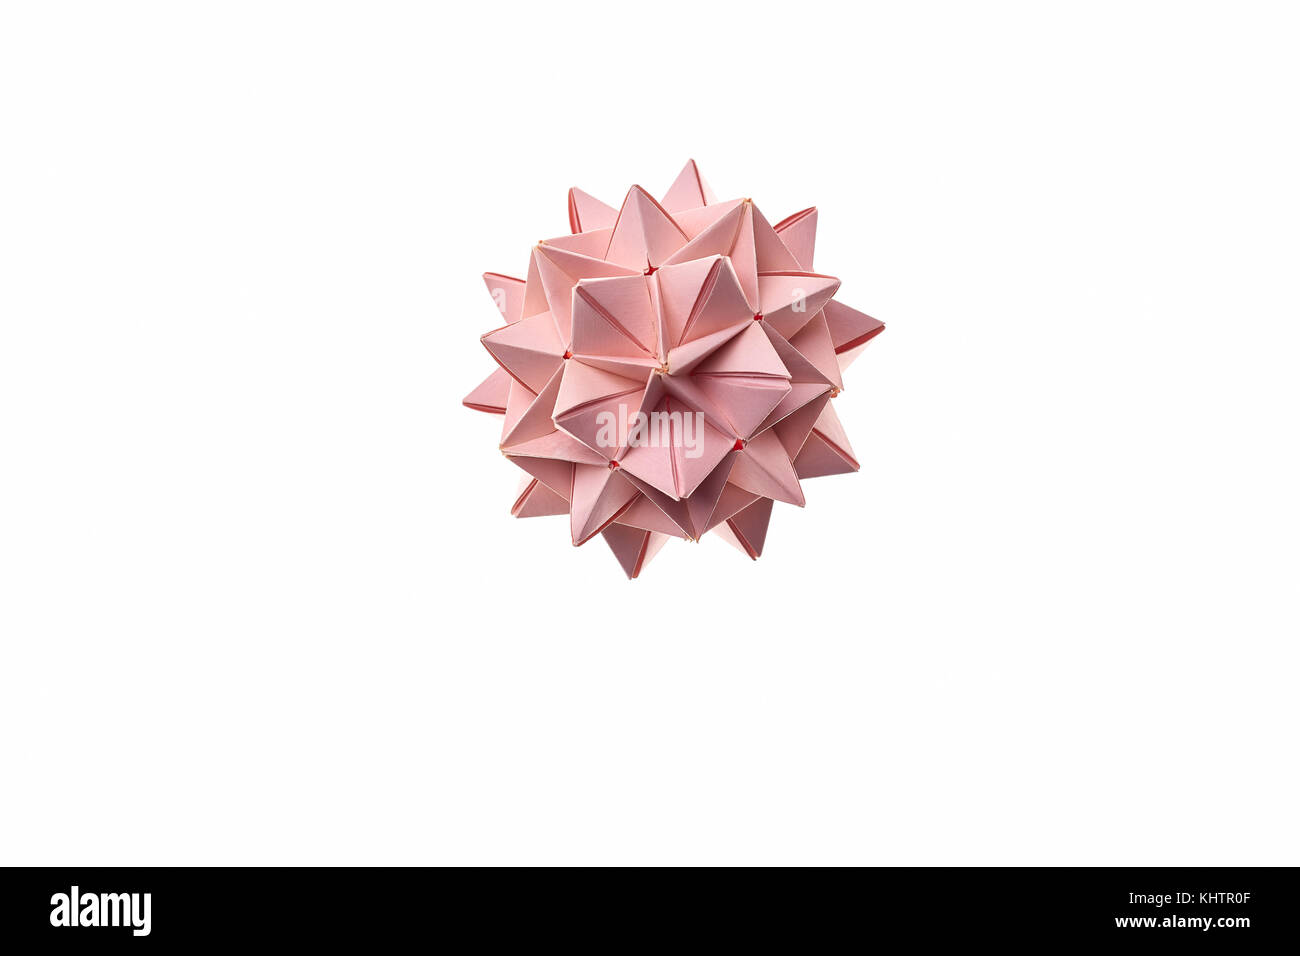 Spiky ball origami figure. — Stock Video © Denisfilm #193955176 | 956x1300